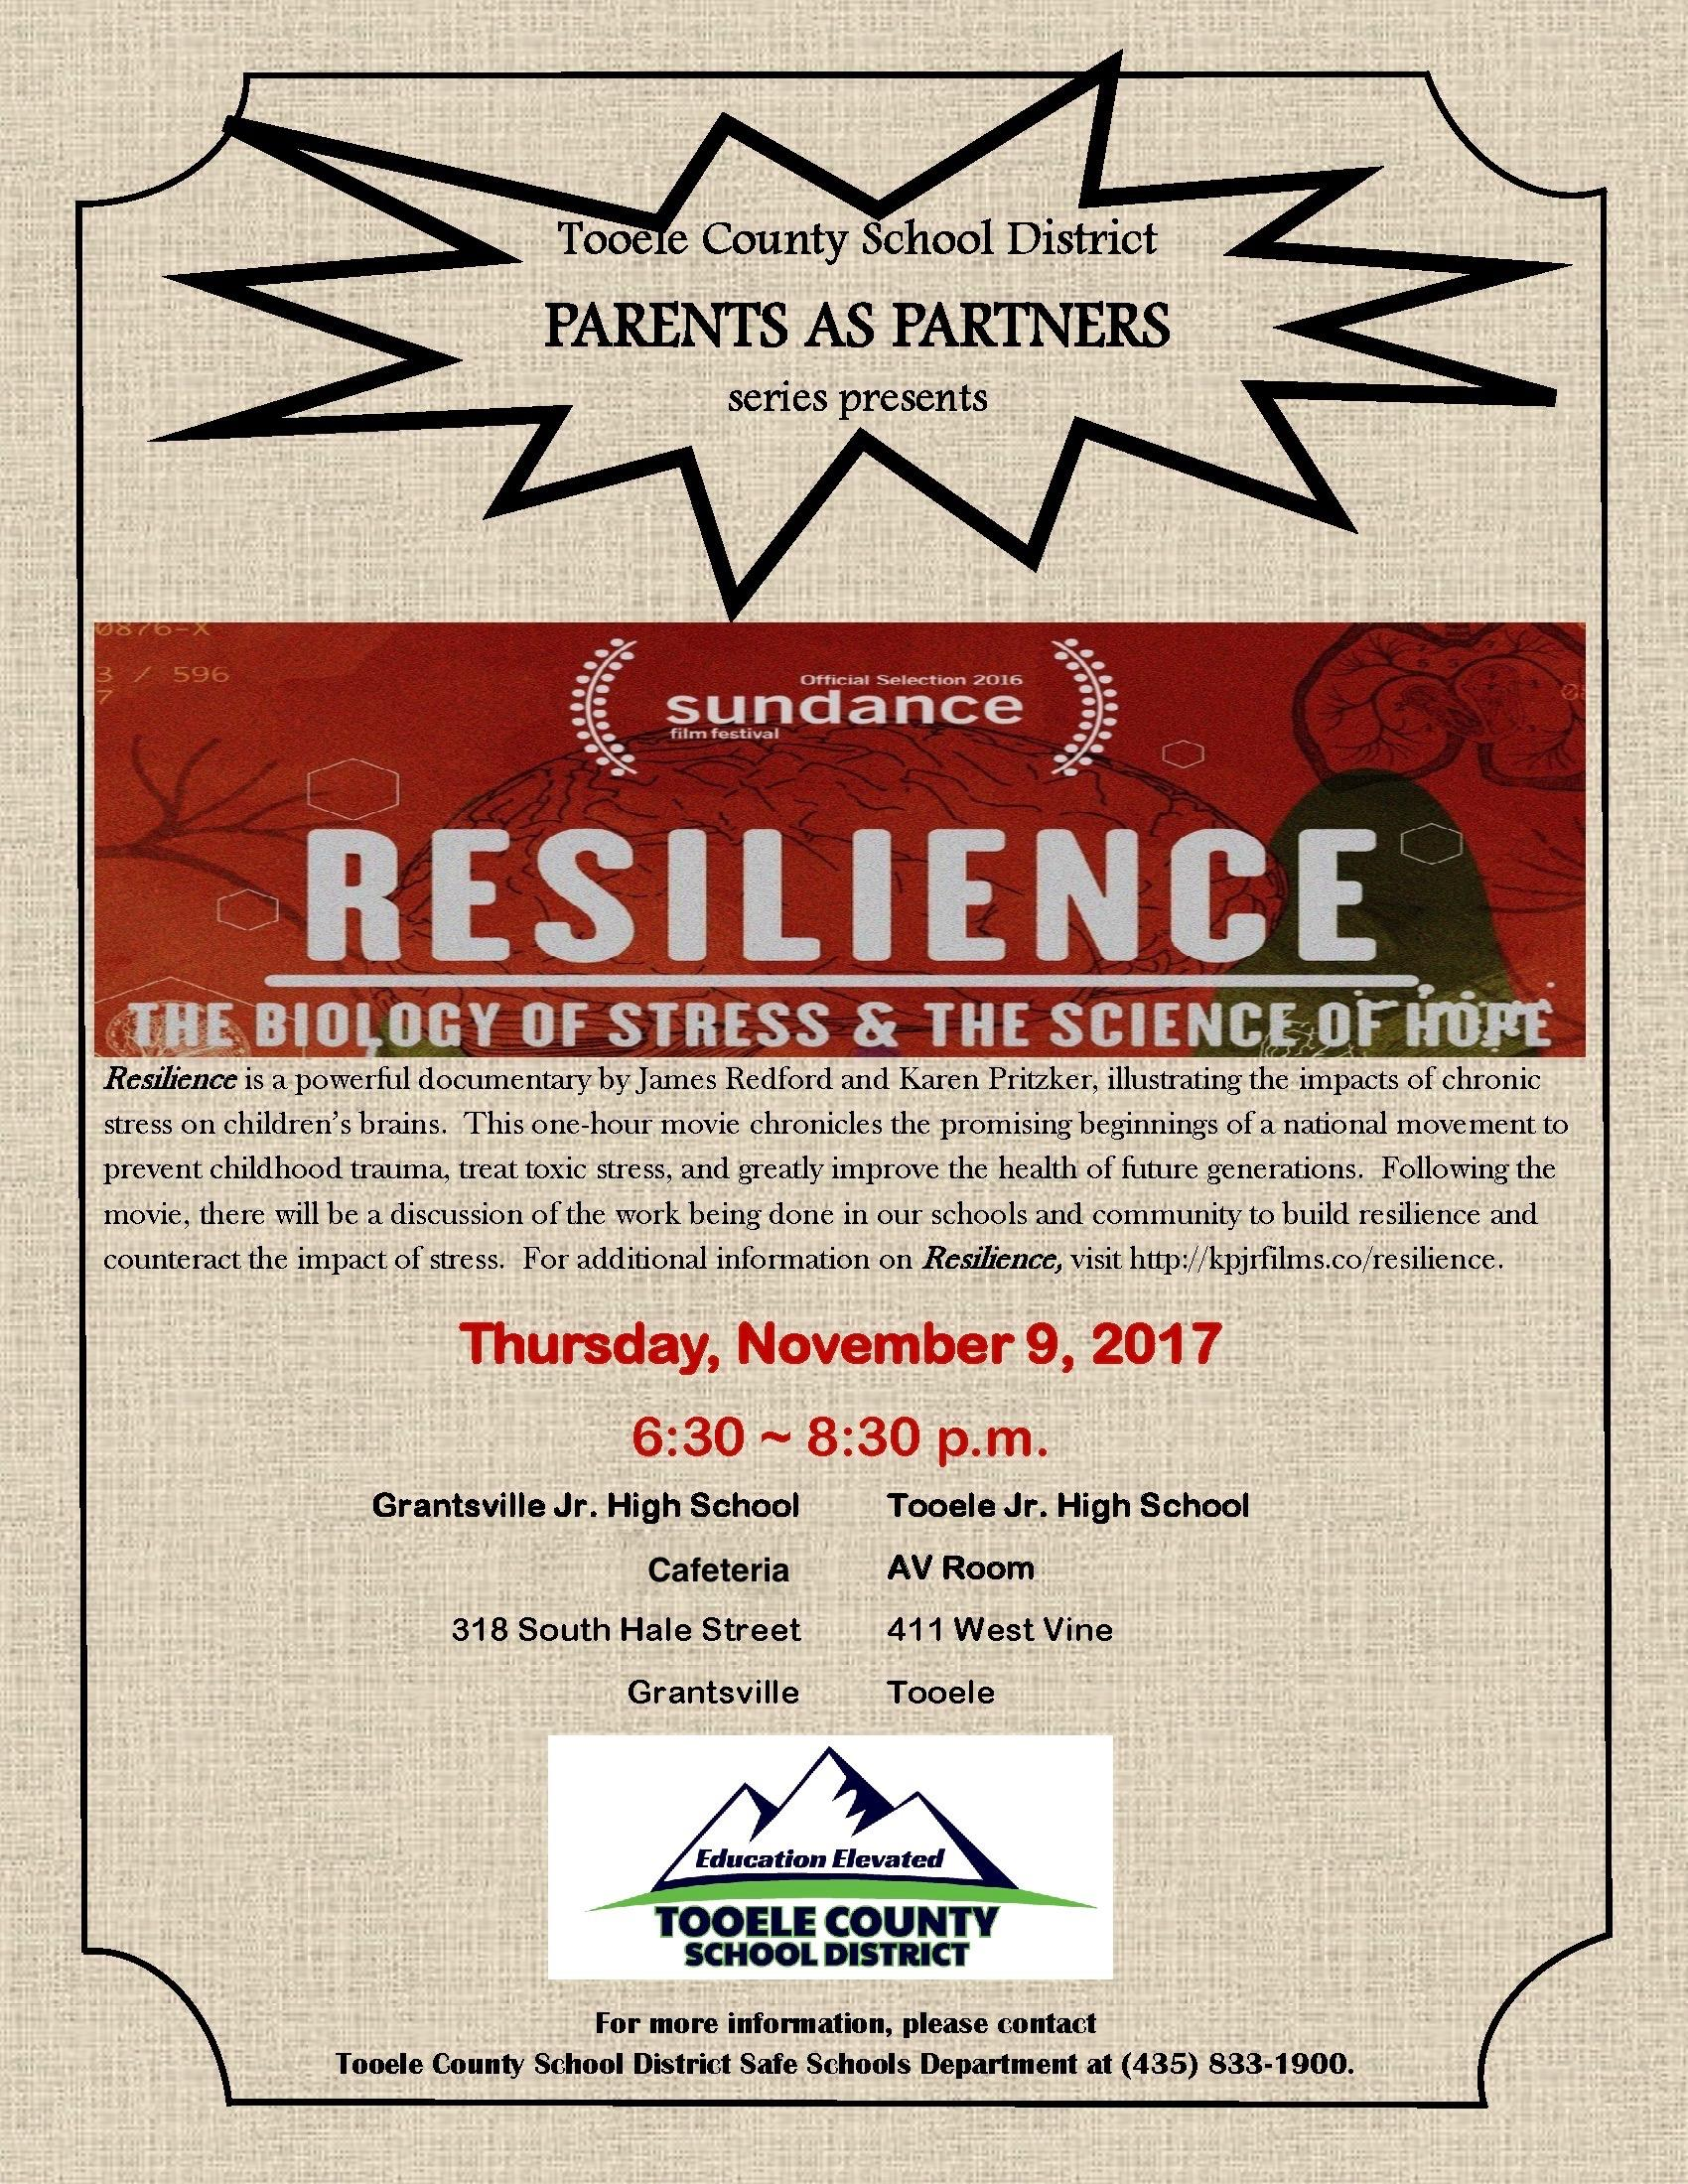 Parents as Partners event